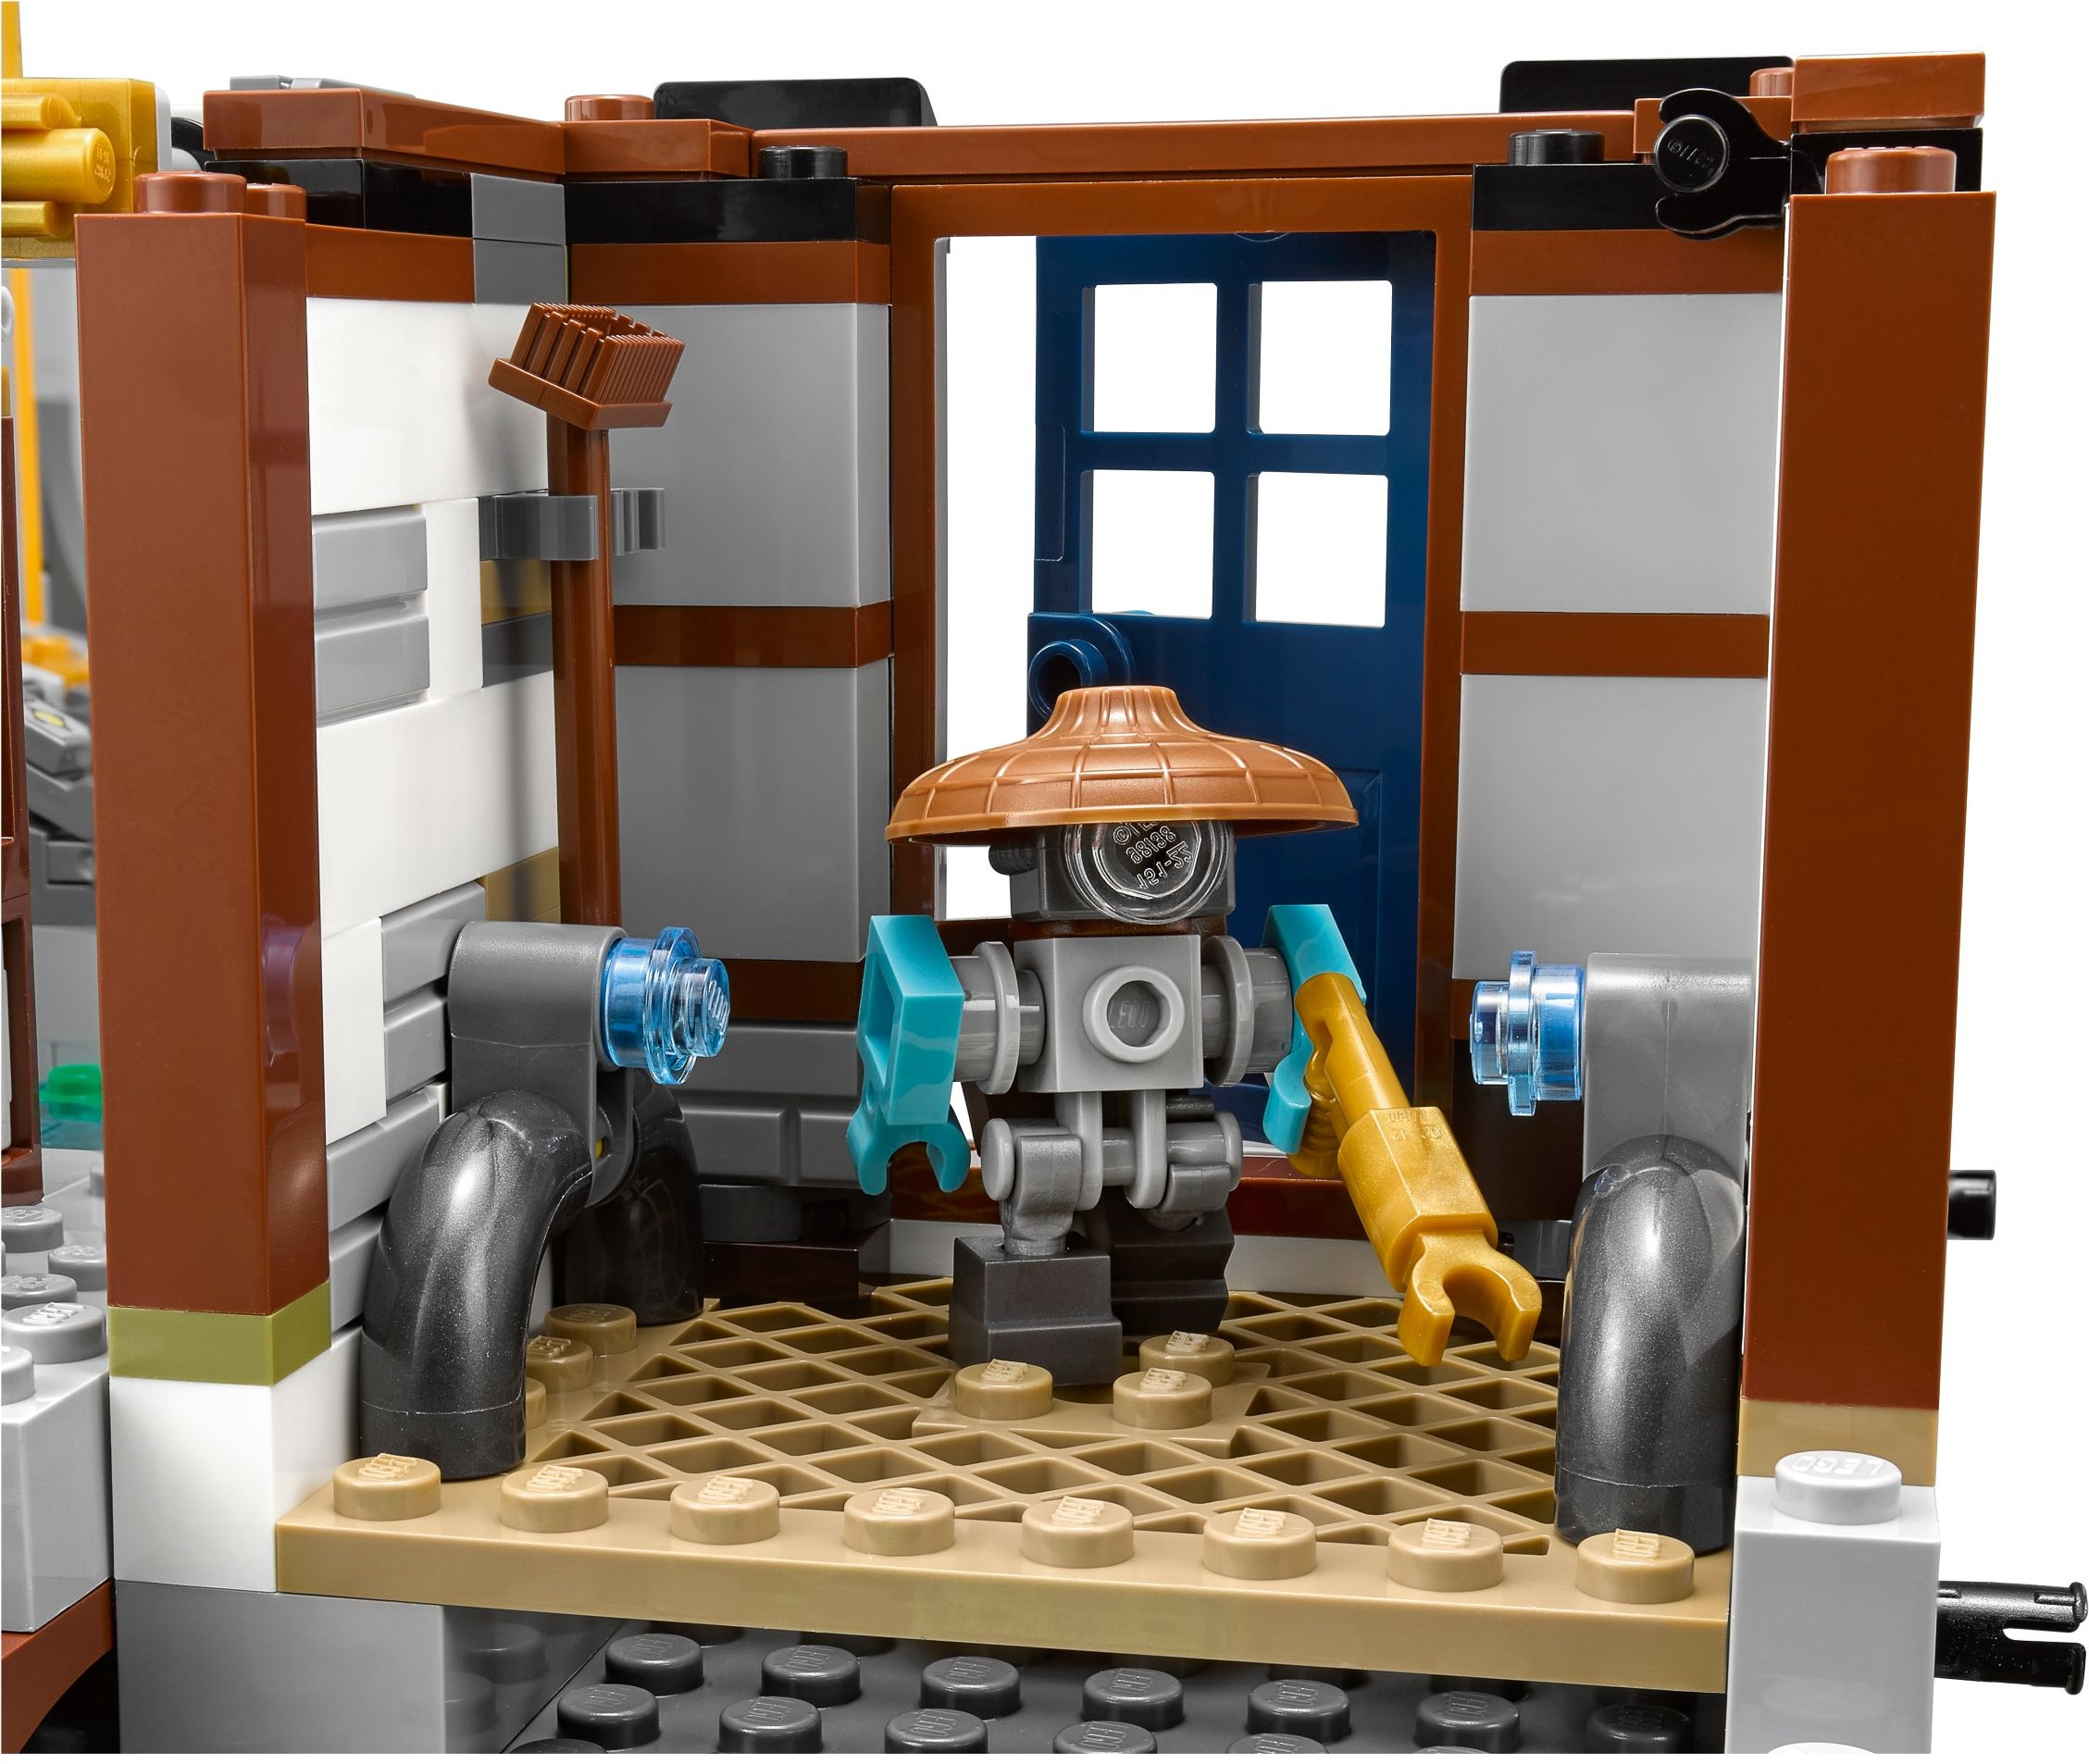 https://images.brickset.com/sets/AdditionalImages/70620-1/70620_alt13.jpg